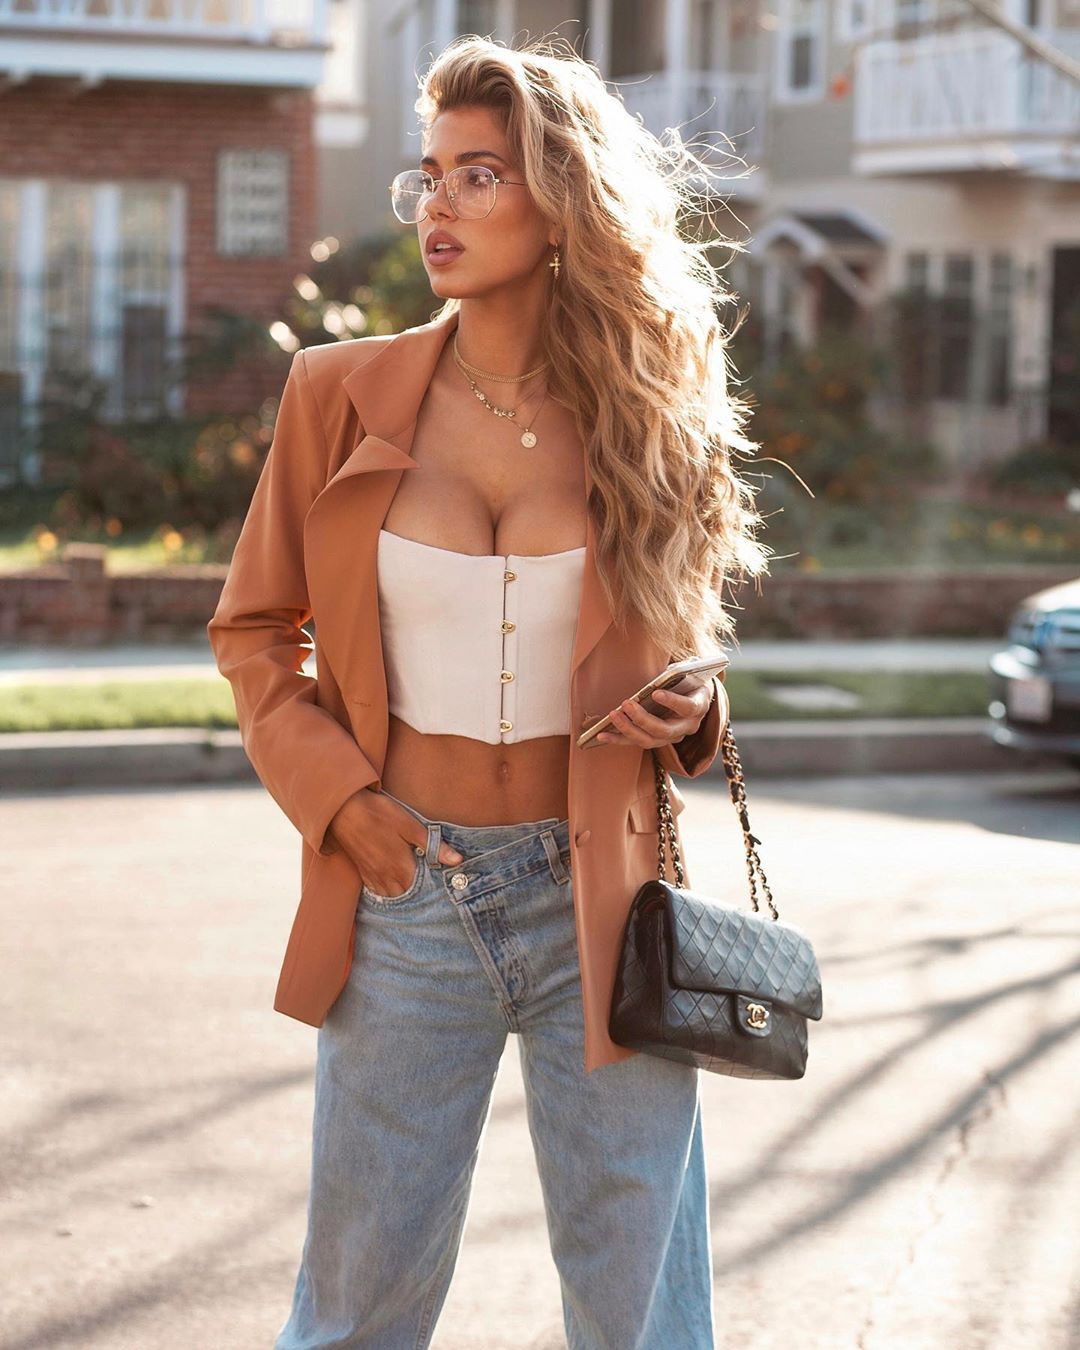 beige outfit ideas with denim, jeans, fashion tips